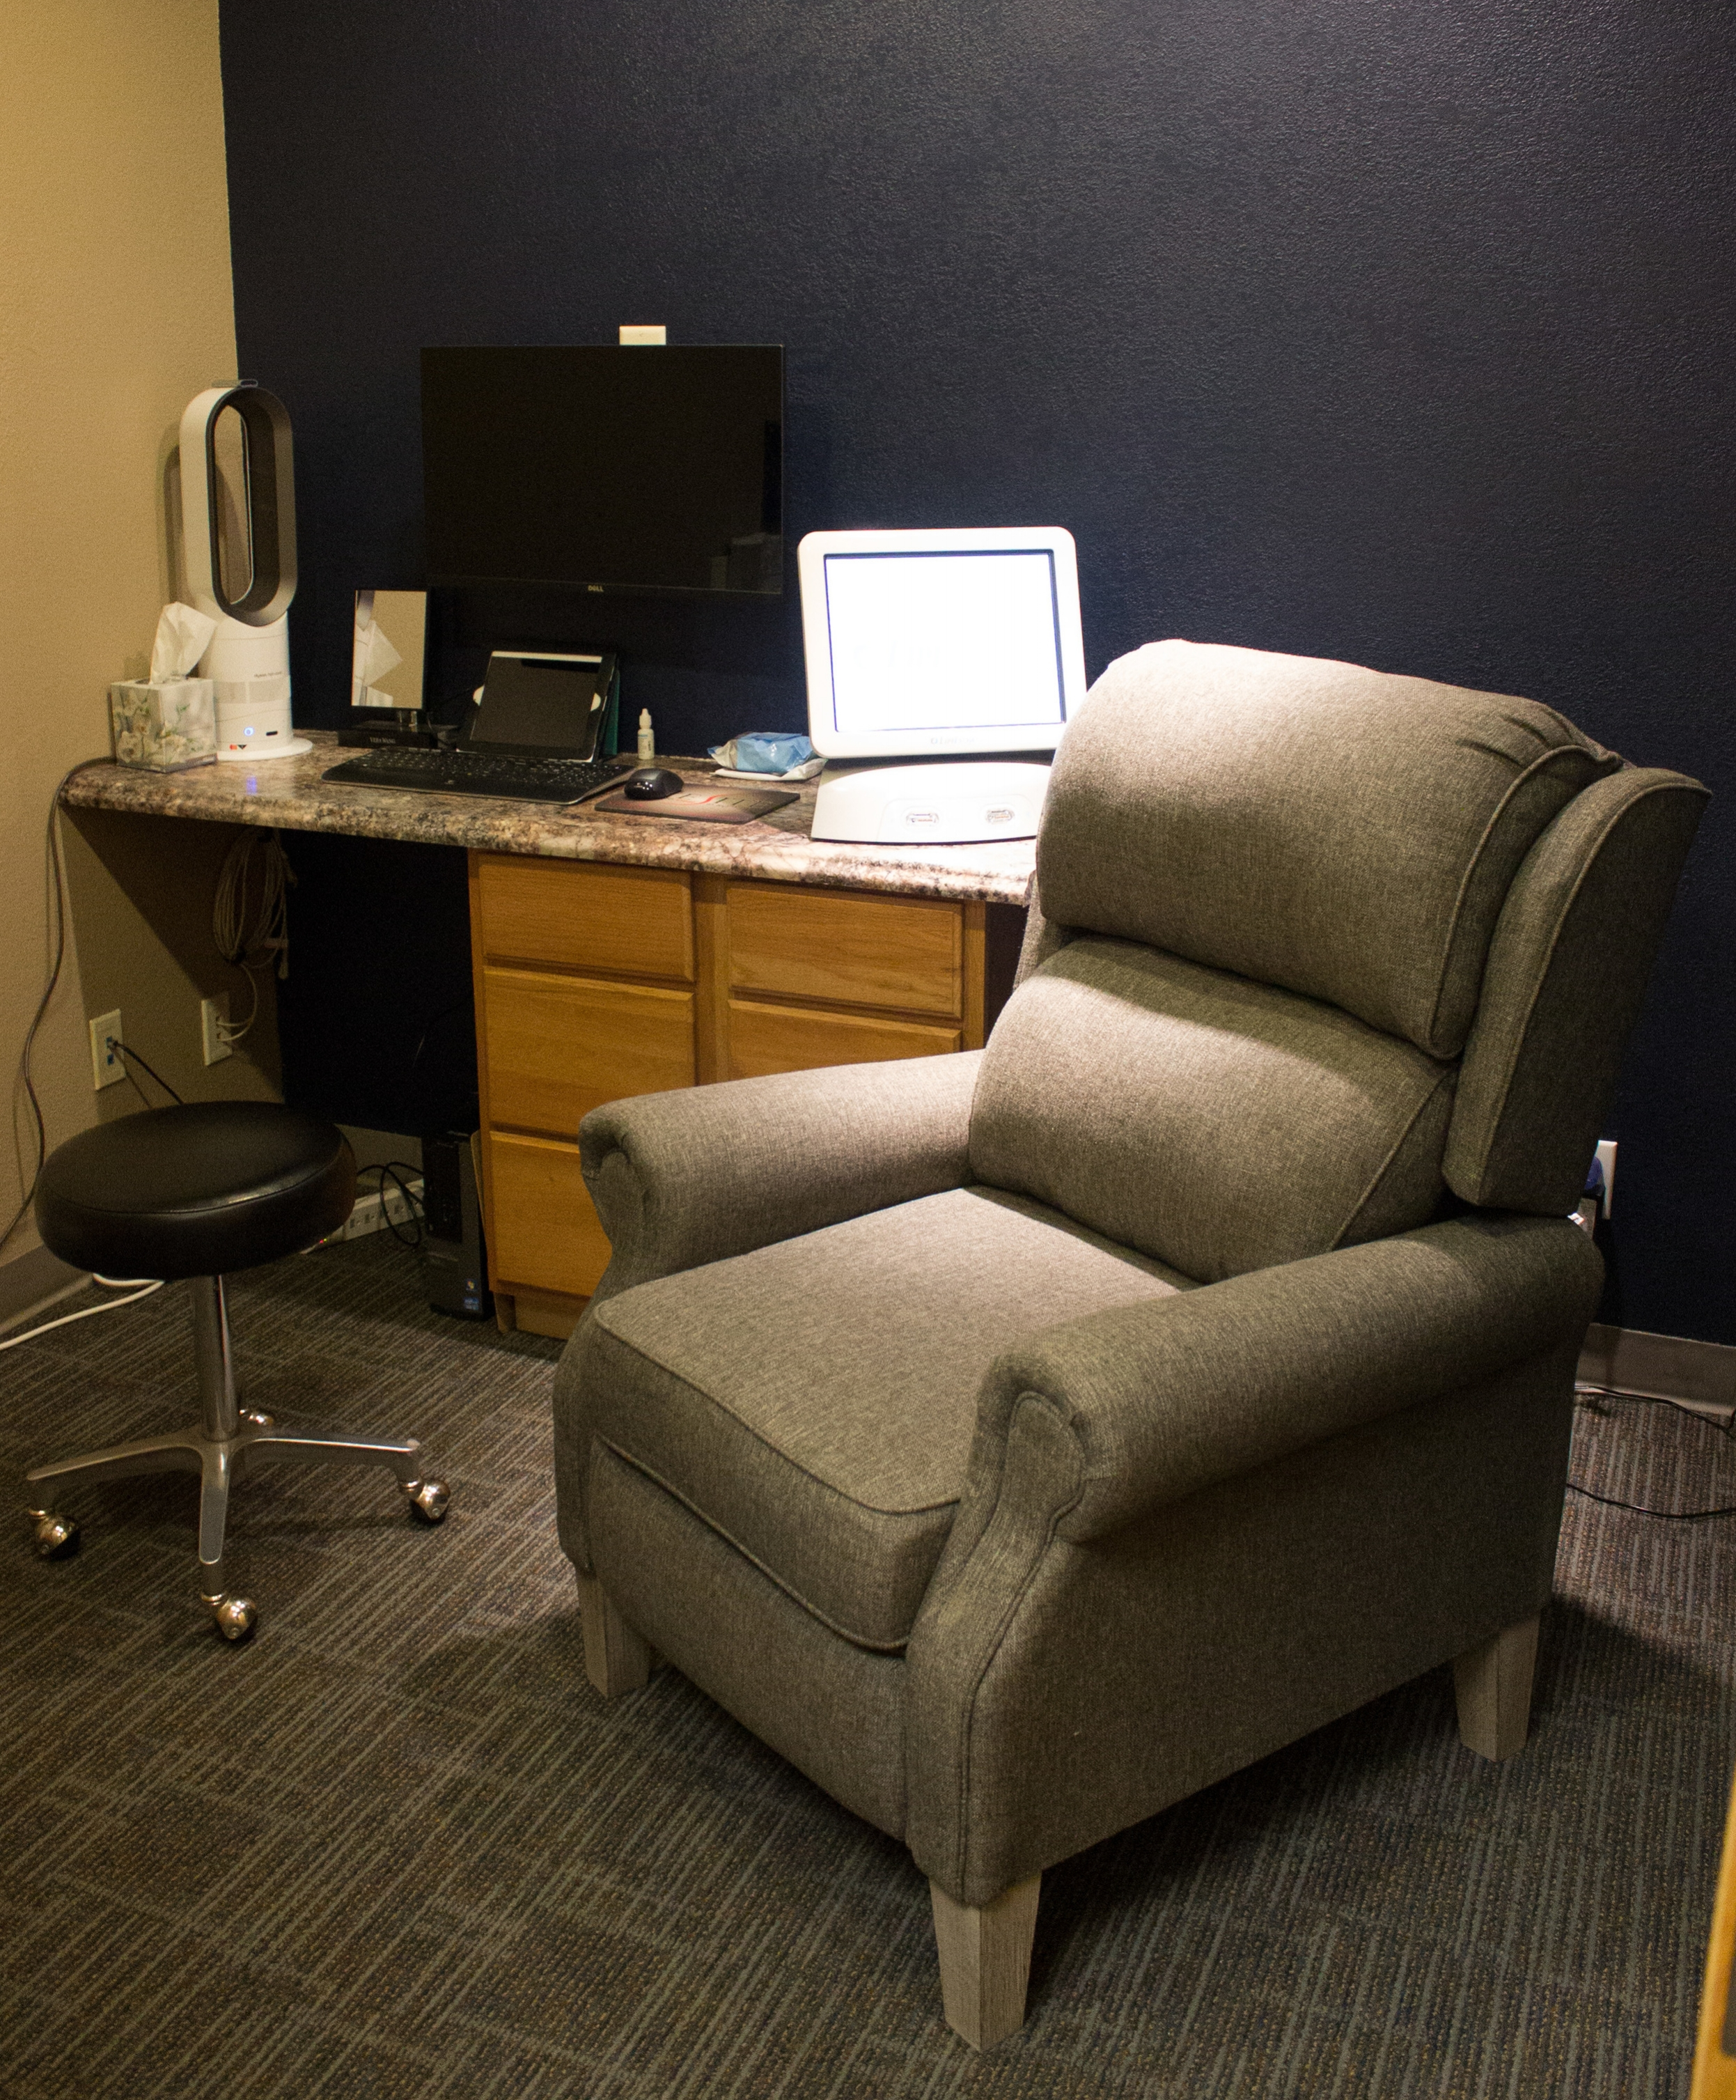 The LipiFlow treatment room provides a relaxing environment with a reclining, plush chair.